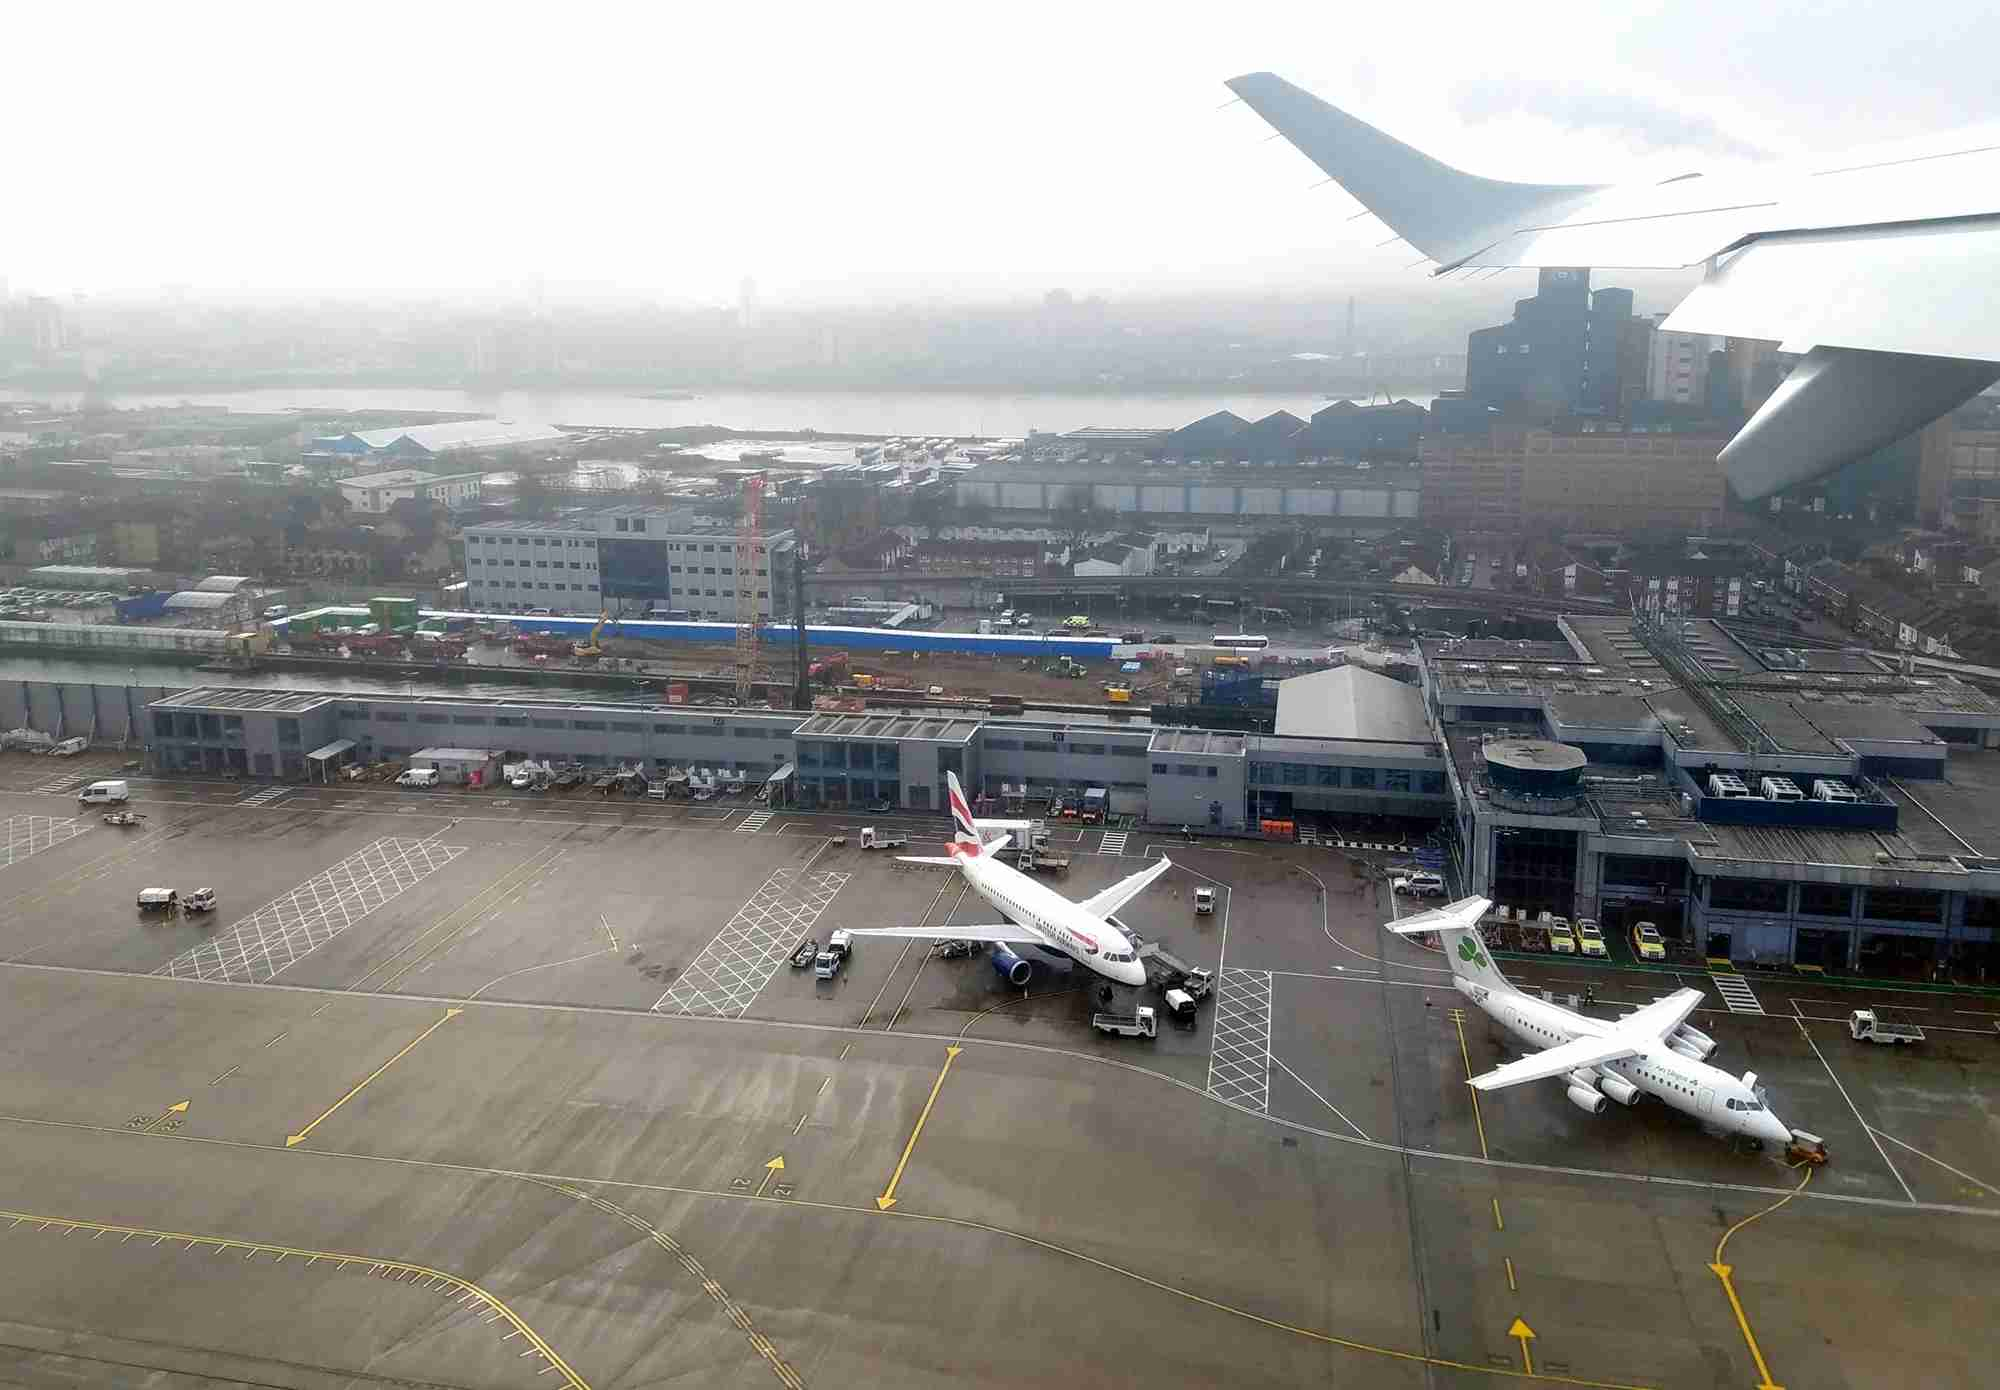 Taking off from London City Airport in January 2018. The airport